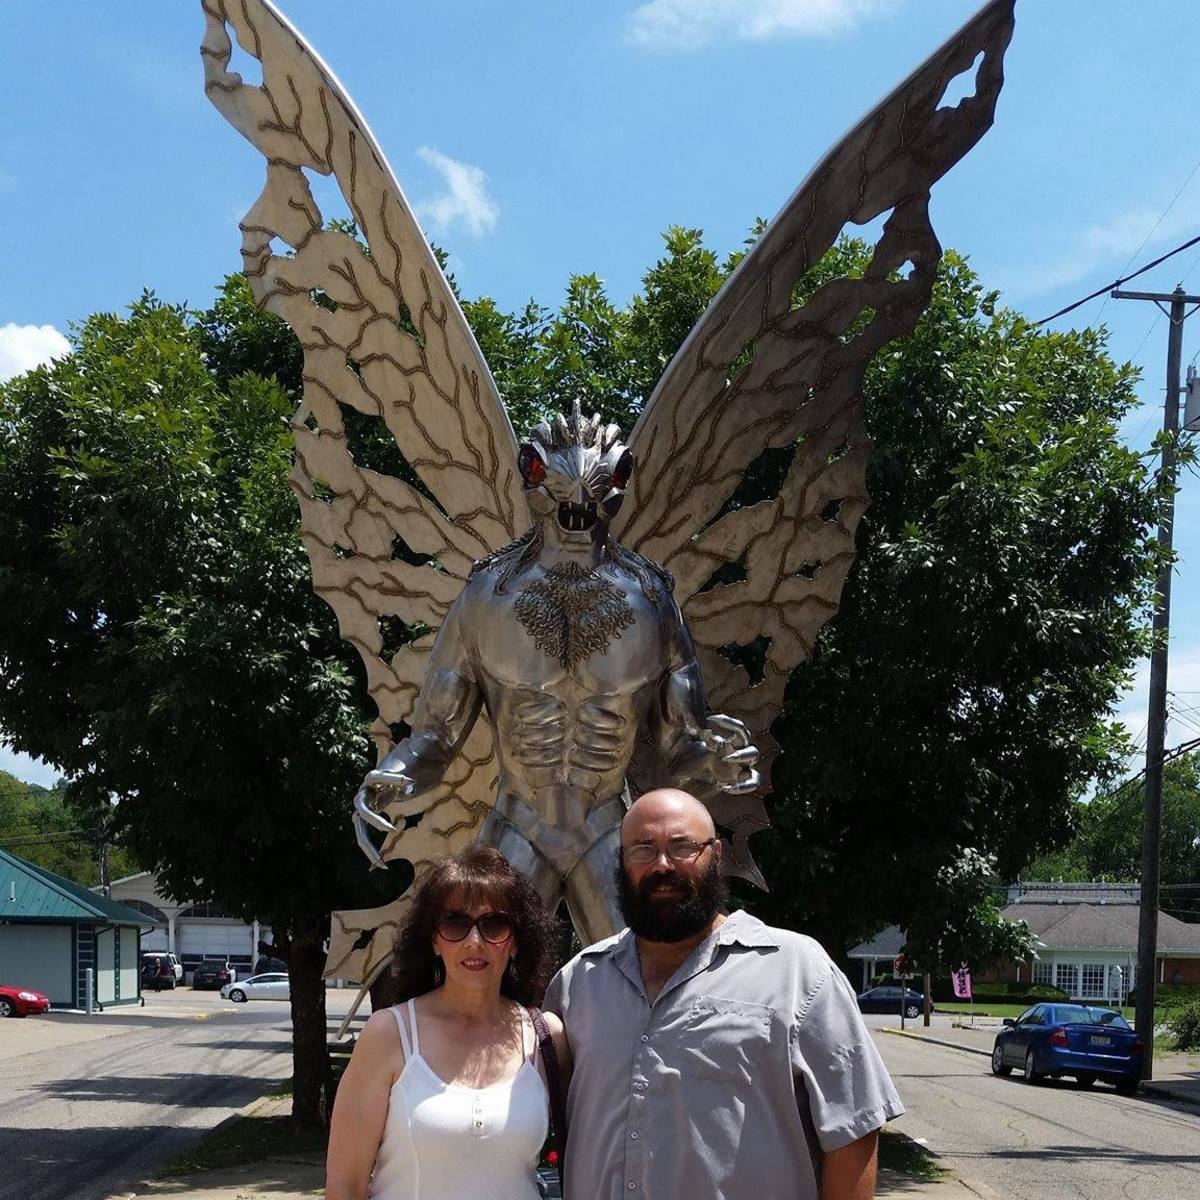 My husband and I in front of the Mothman statue located in Point Pleasant, West Virginia.